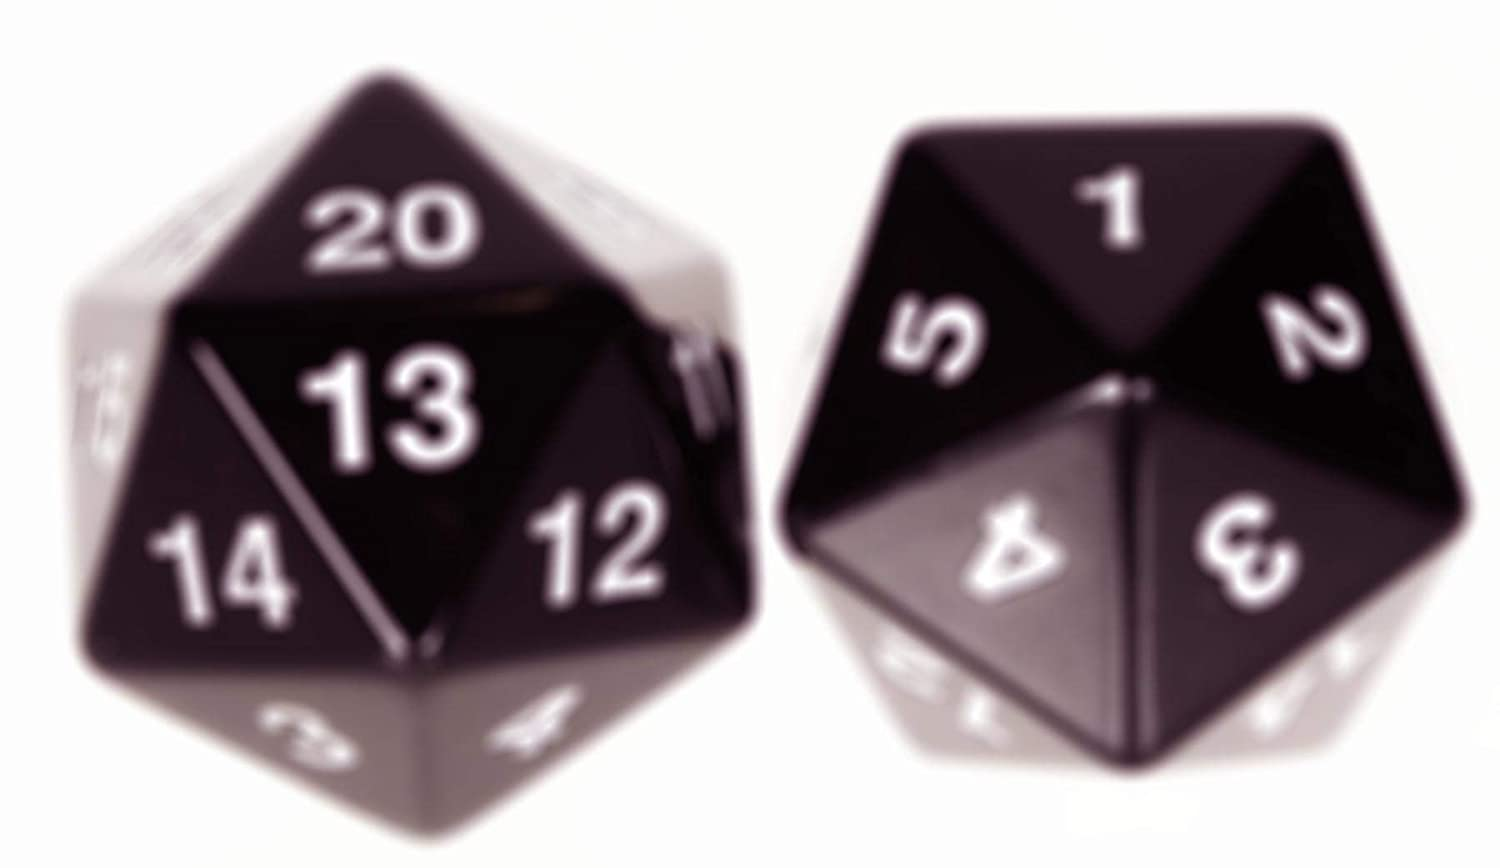 Big Jumbo 20Sided, d20 Black Dice Bundle of 2 Identical Dice